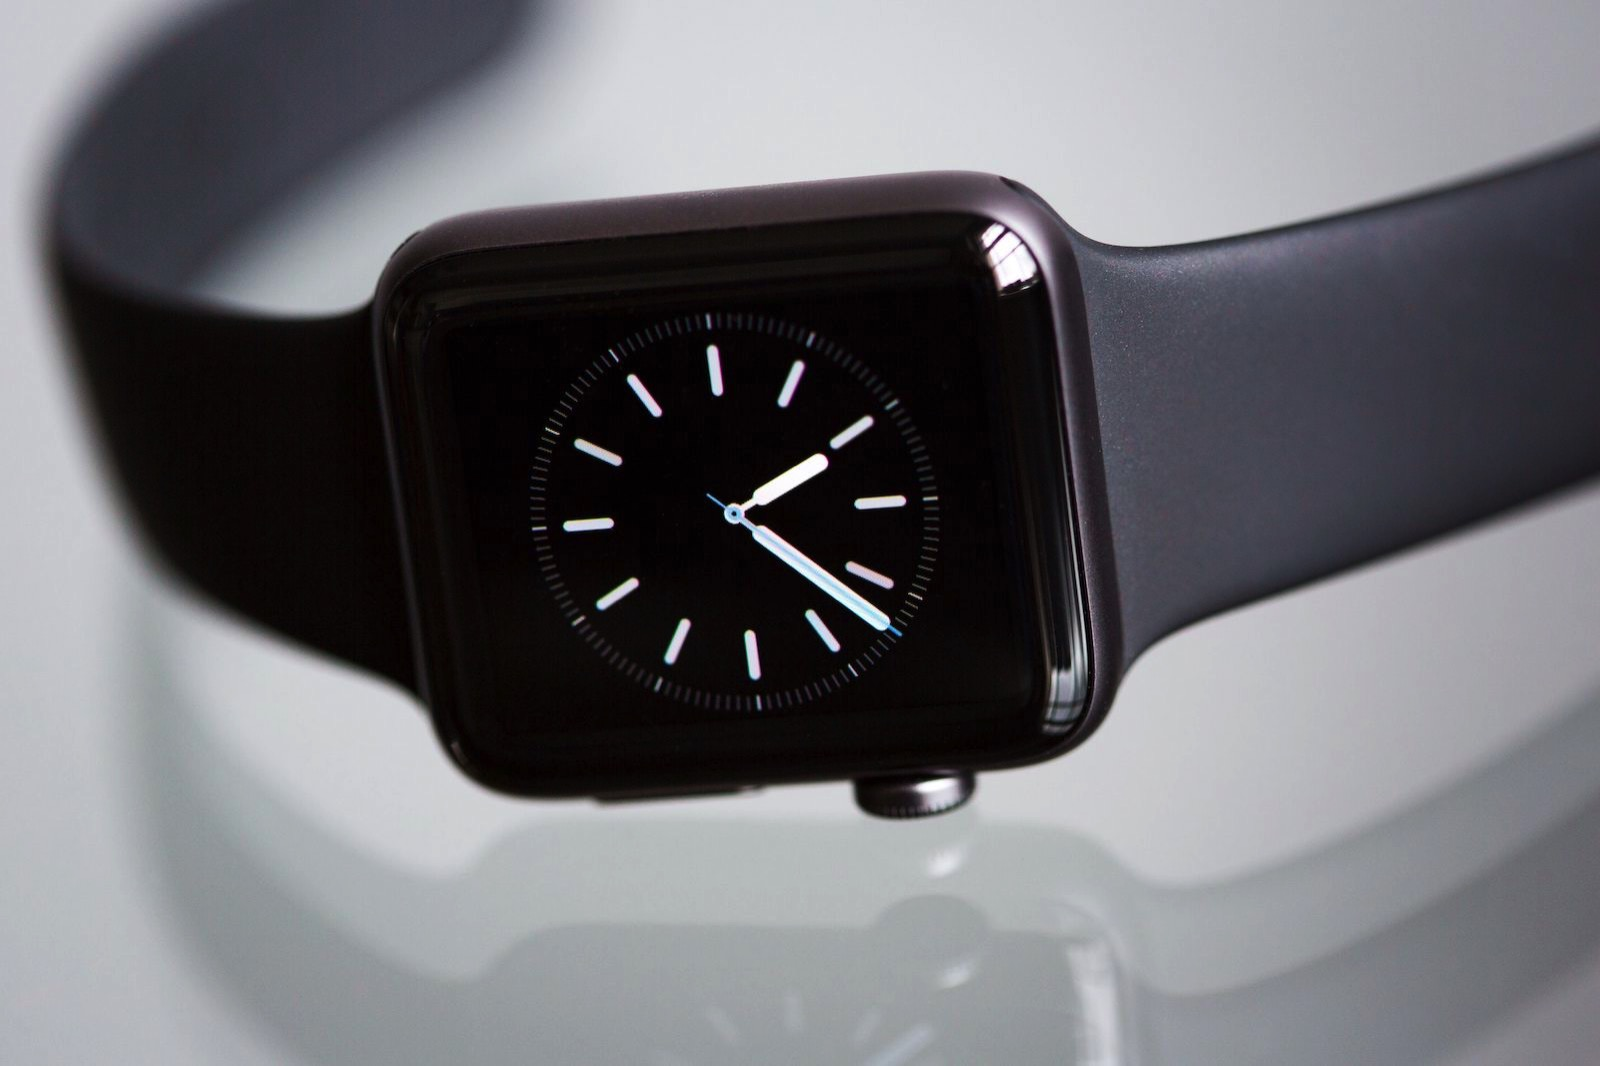 apple-apple-watch-2-black-437037.jpg